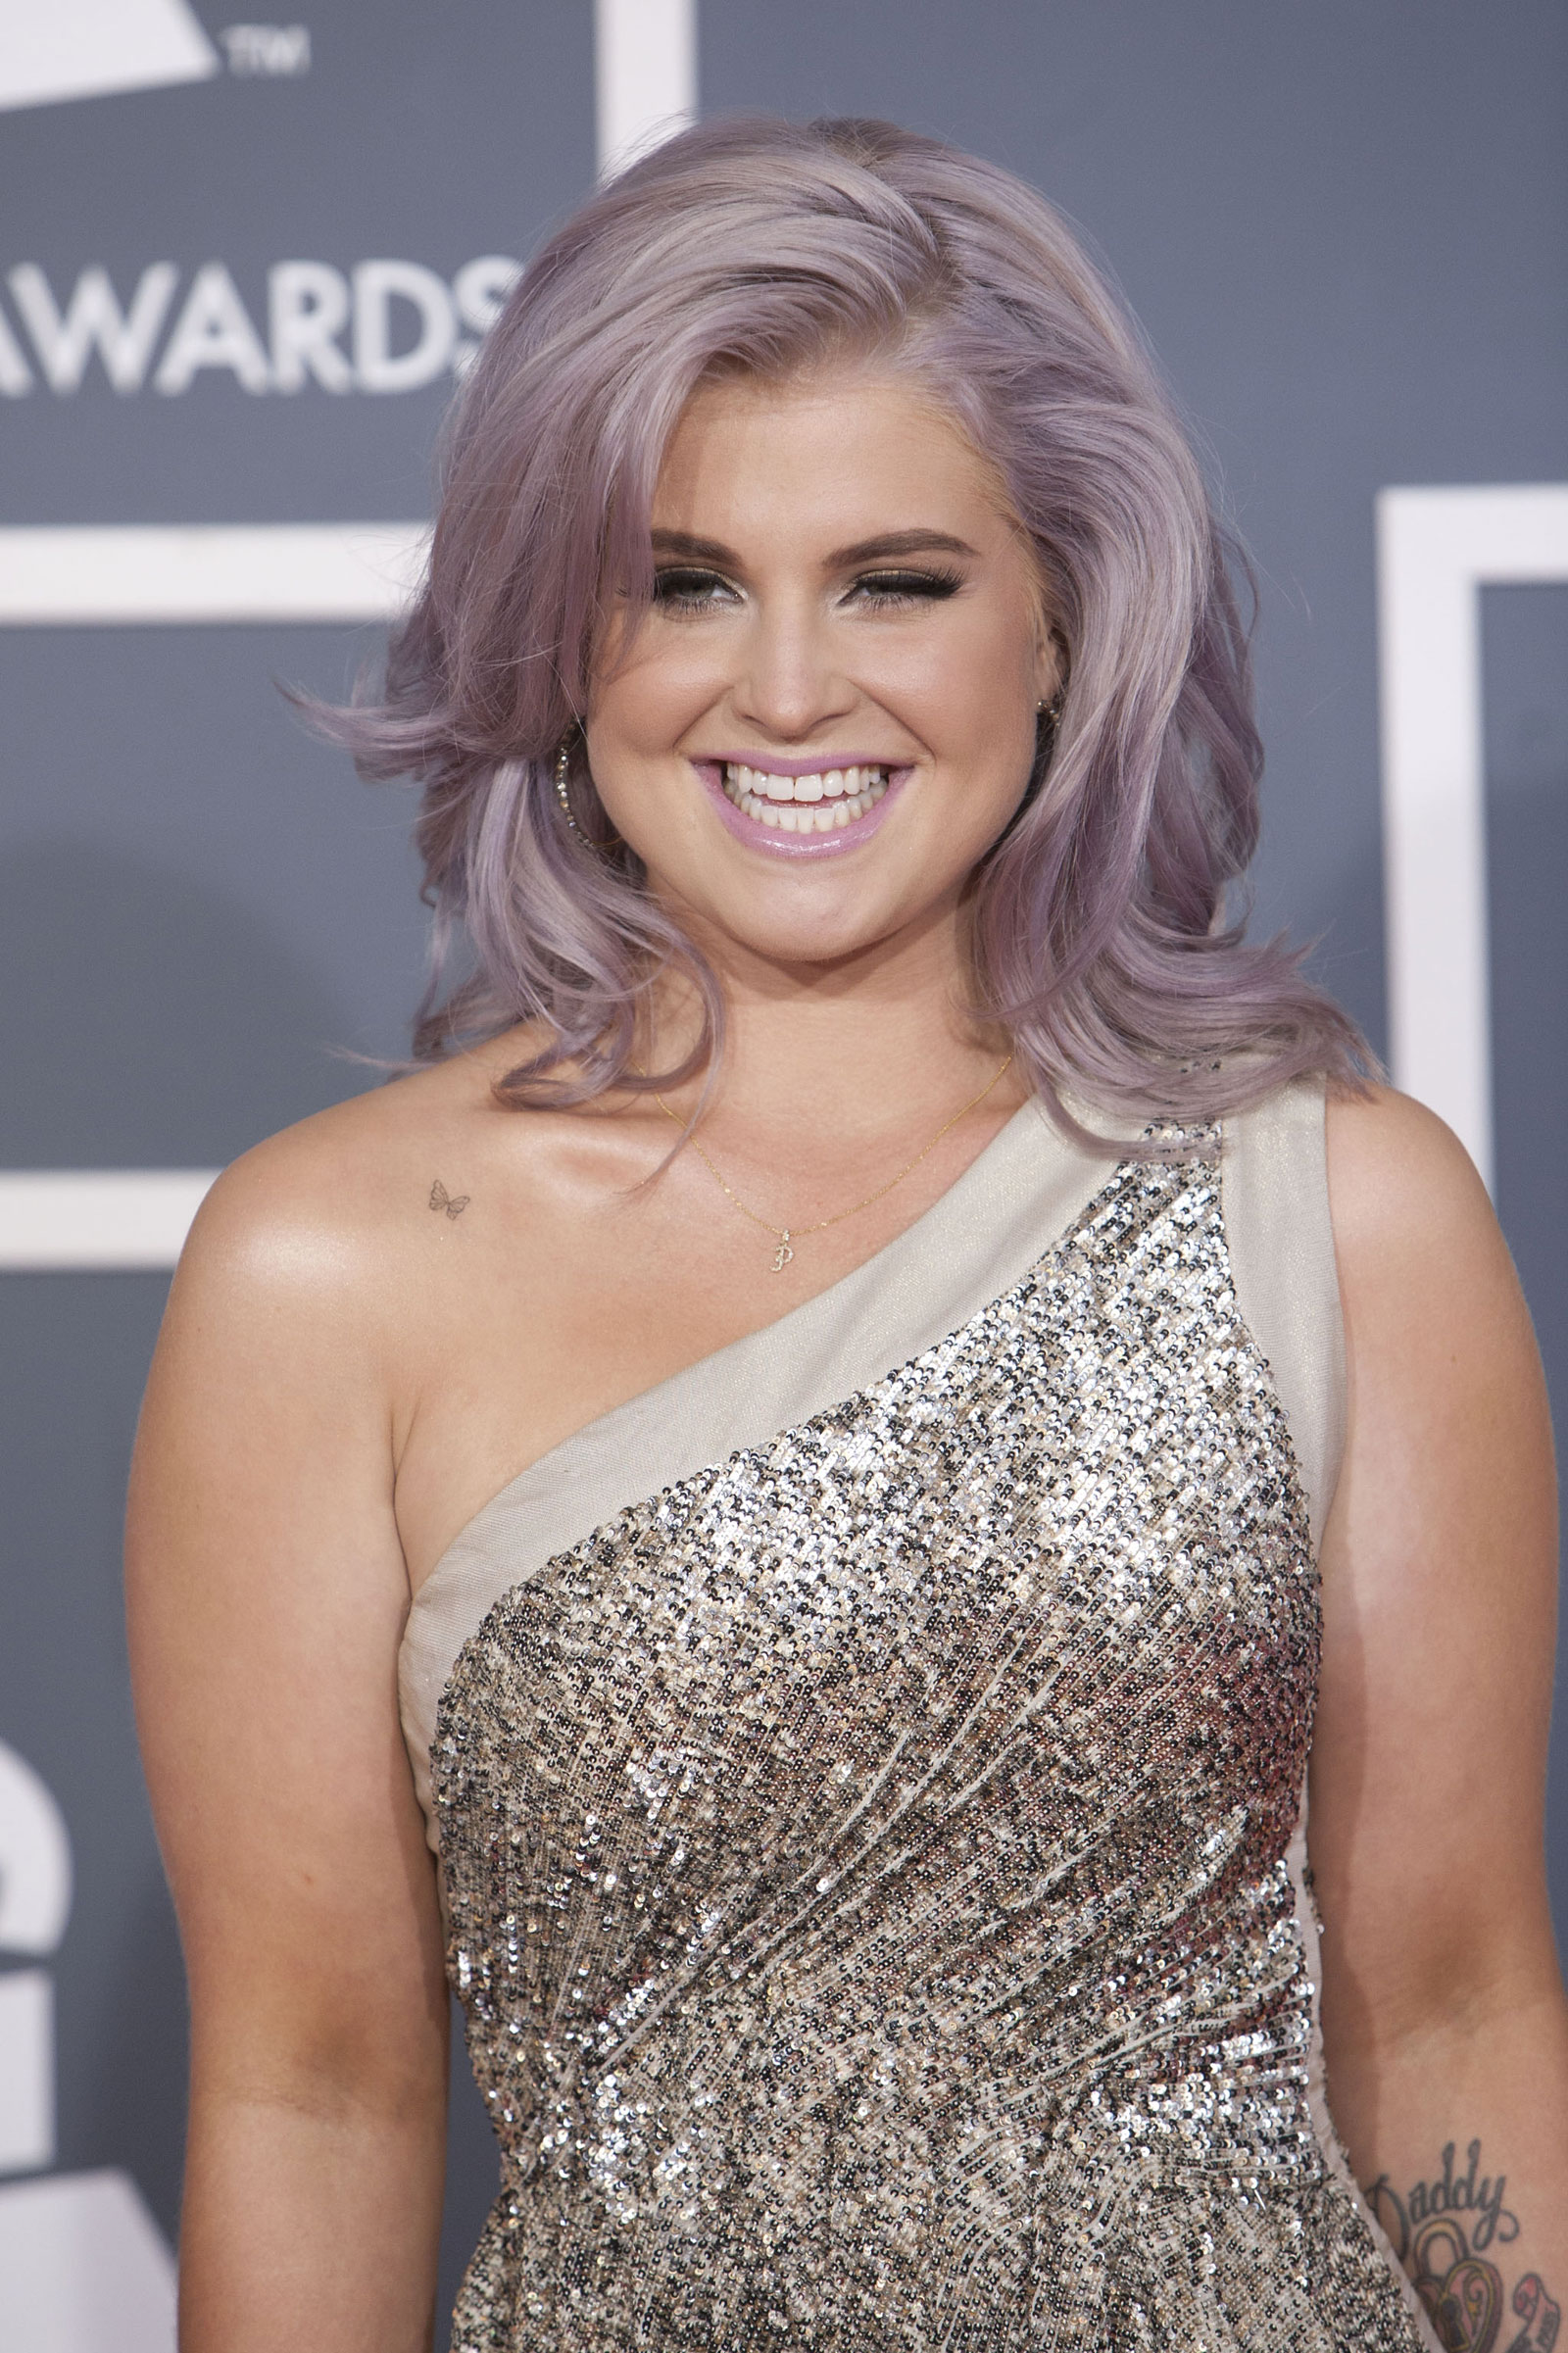 Kelly Osbourne at th Annual Grammy Awards in Los Angeles